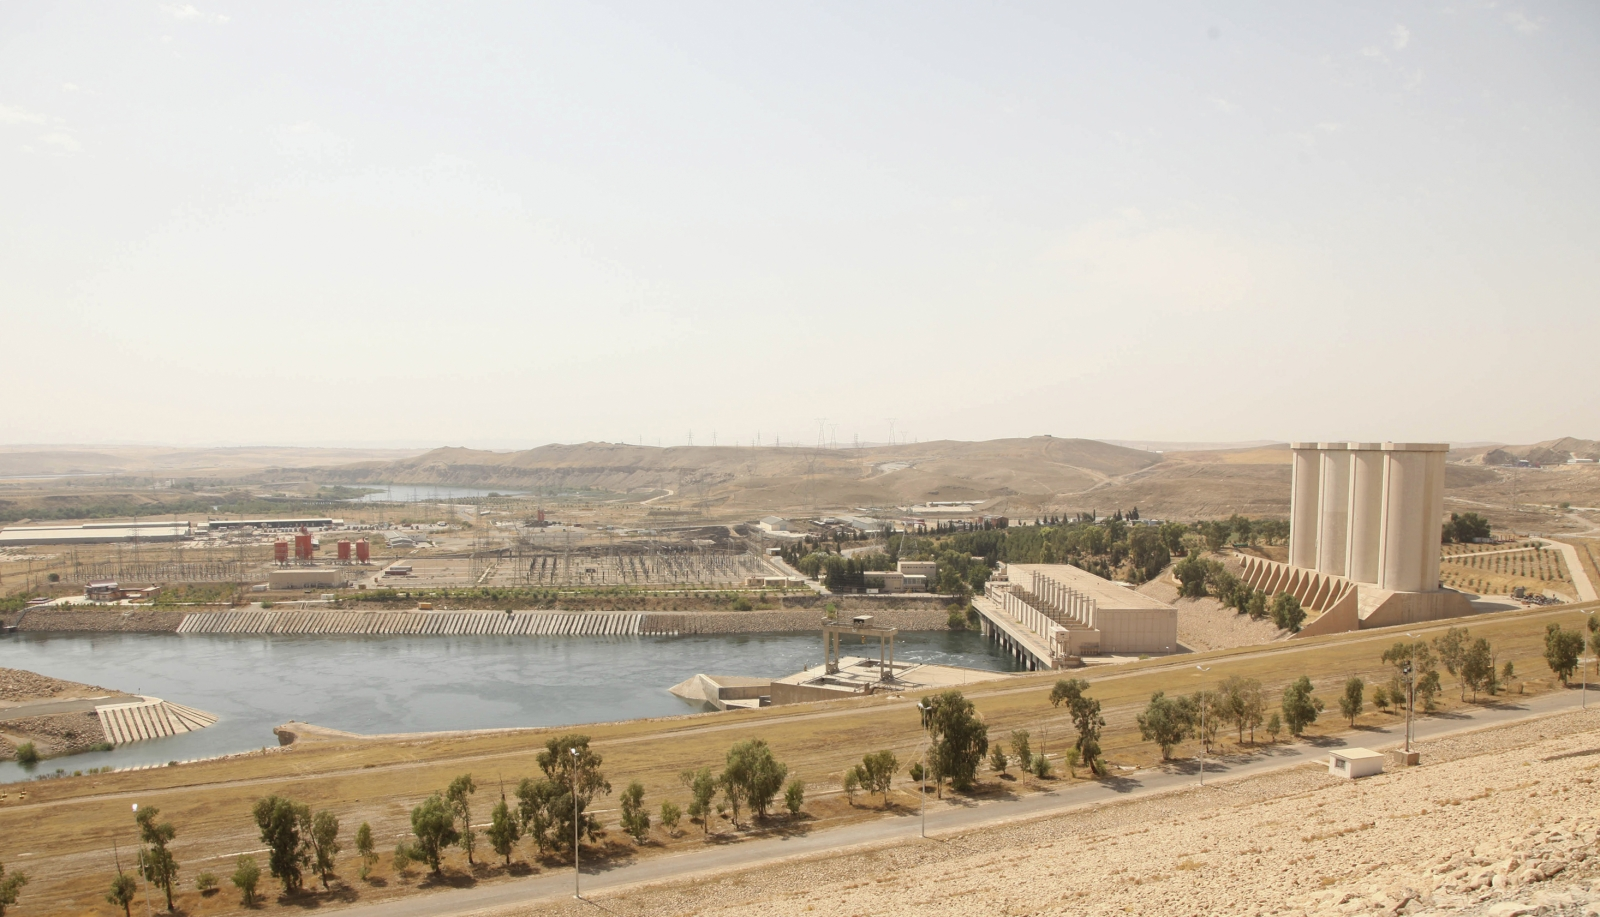 general view of Mosul Dam